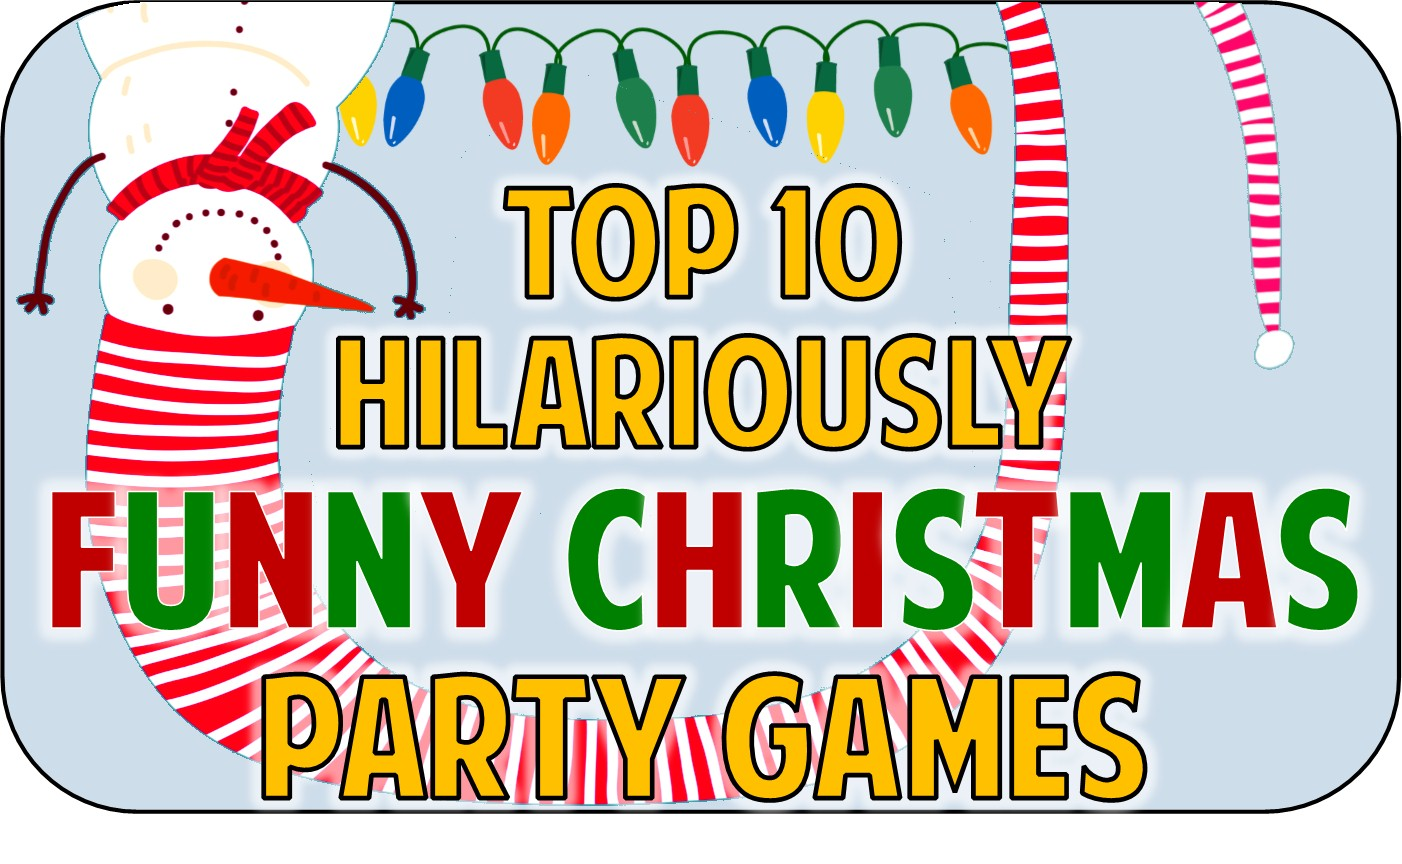 This excellent christmas party games adults